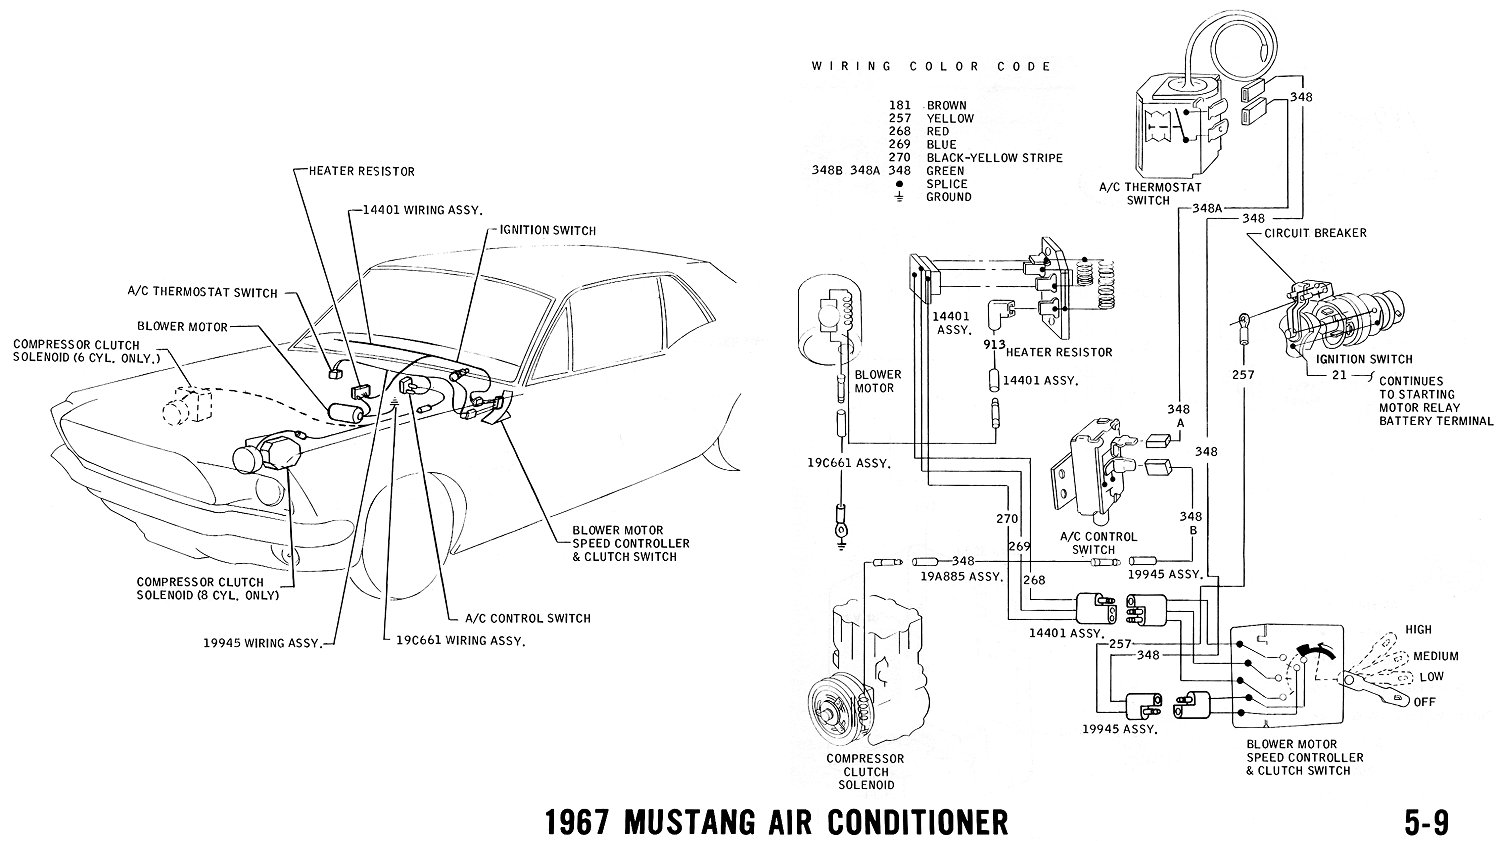 67ac 67 ac compressor runs constantly vintage mustang forums 1967 Mustang Wiring Schematic at alyssarenee.co